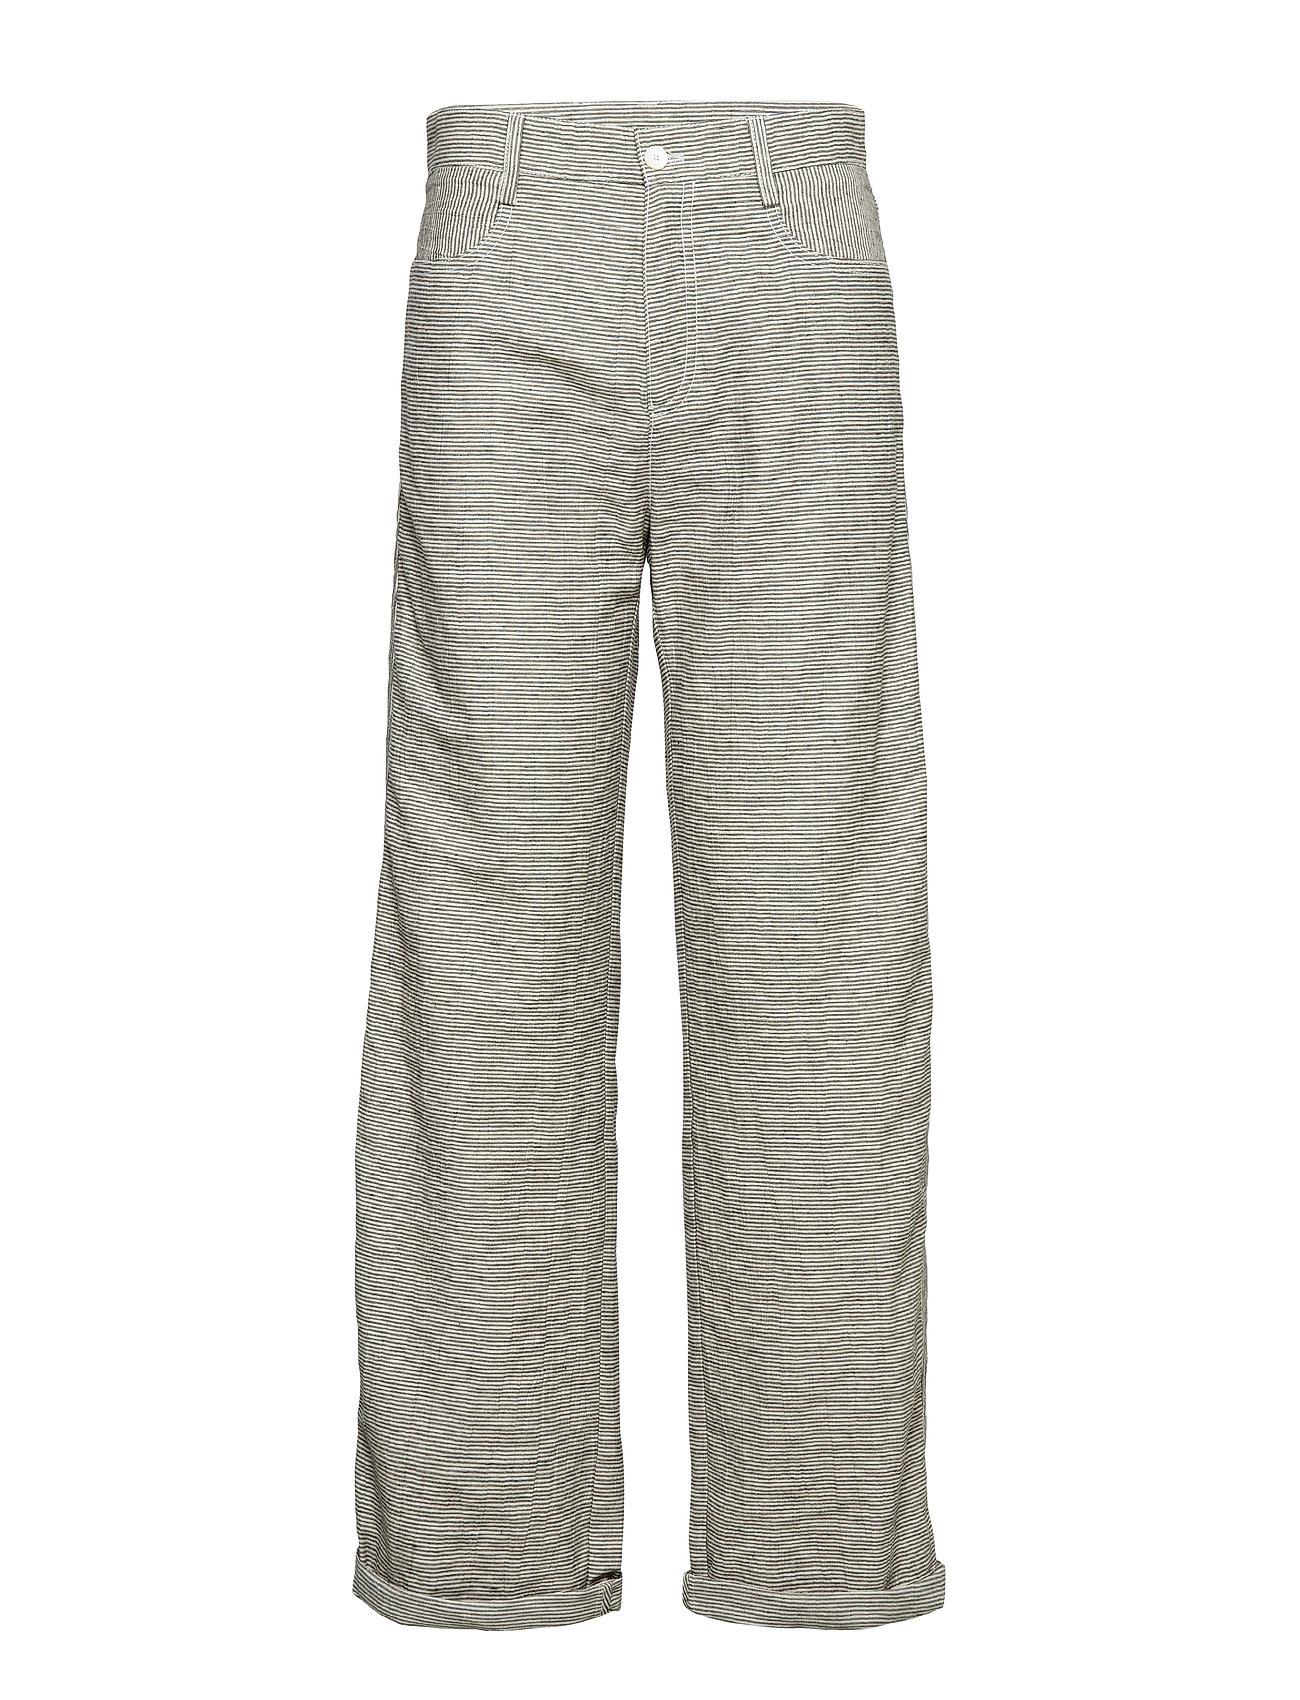 Image of Craft Trouser Vide Bukser Grå Hope (3237811143)